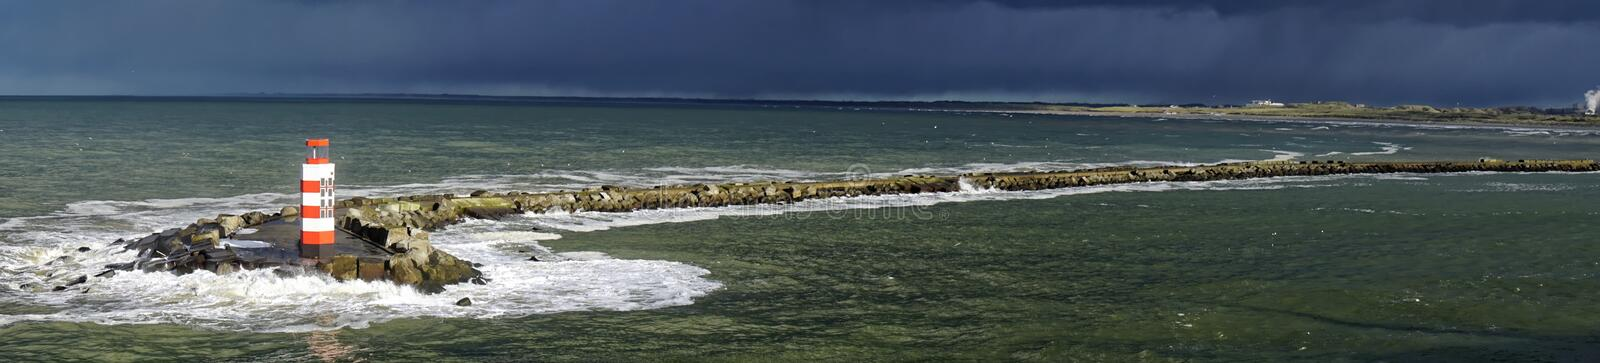 Panorama of Lighthouse in Stormy Sea royalty free stock photos